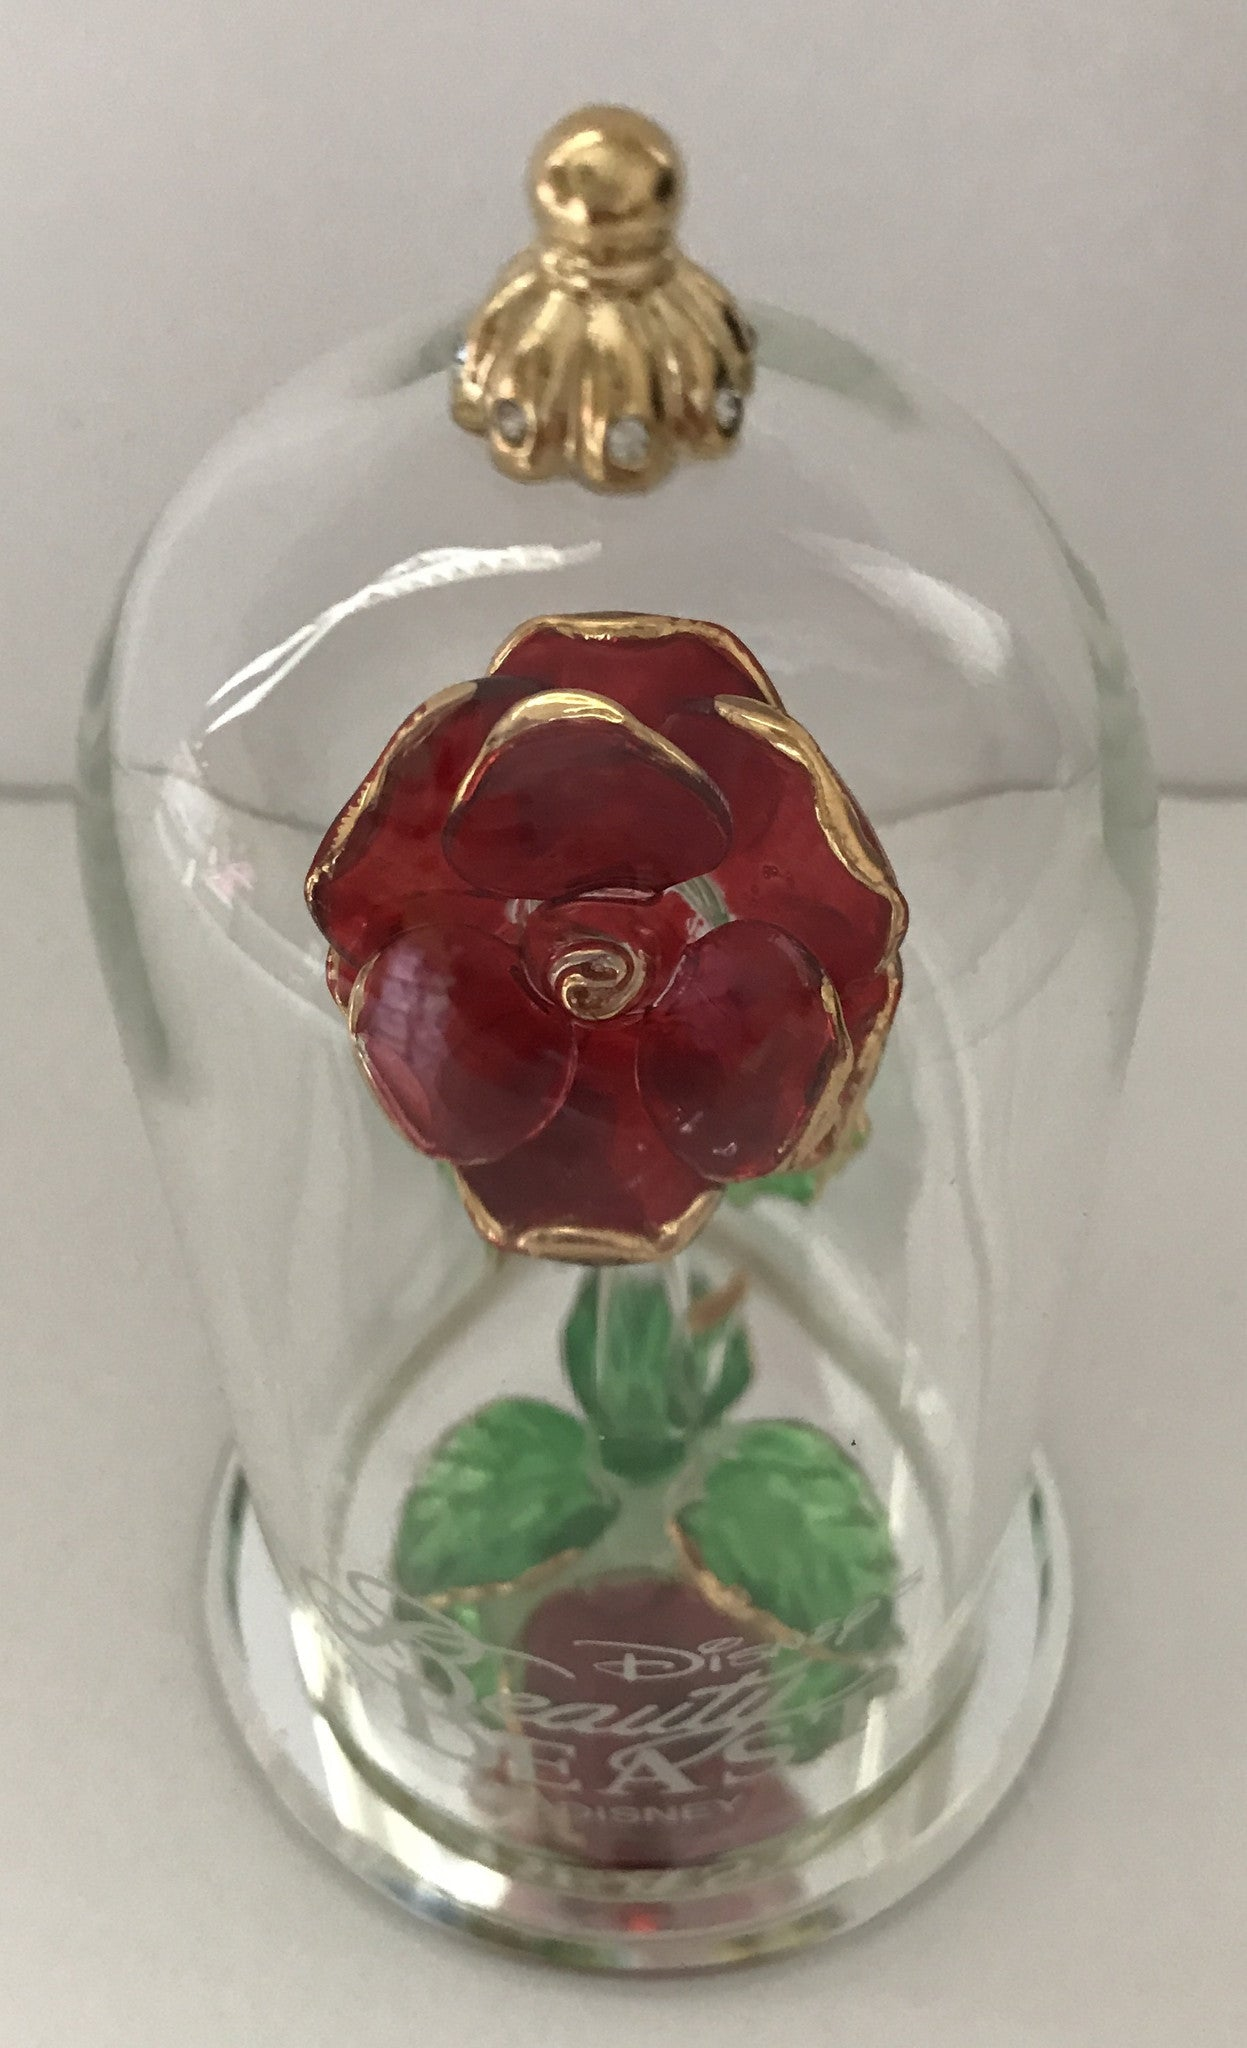 Disney Beauty And The Beast Enchanted Rose Glass Sculpture By